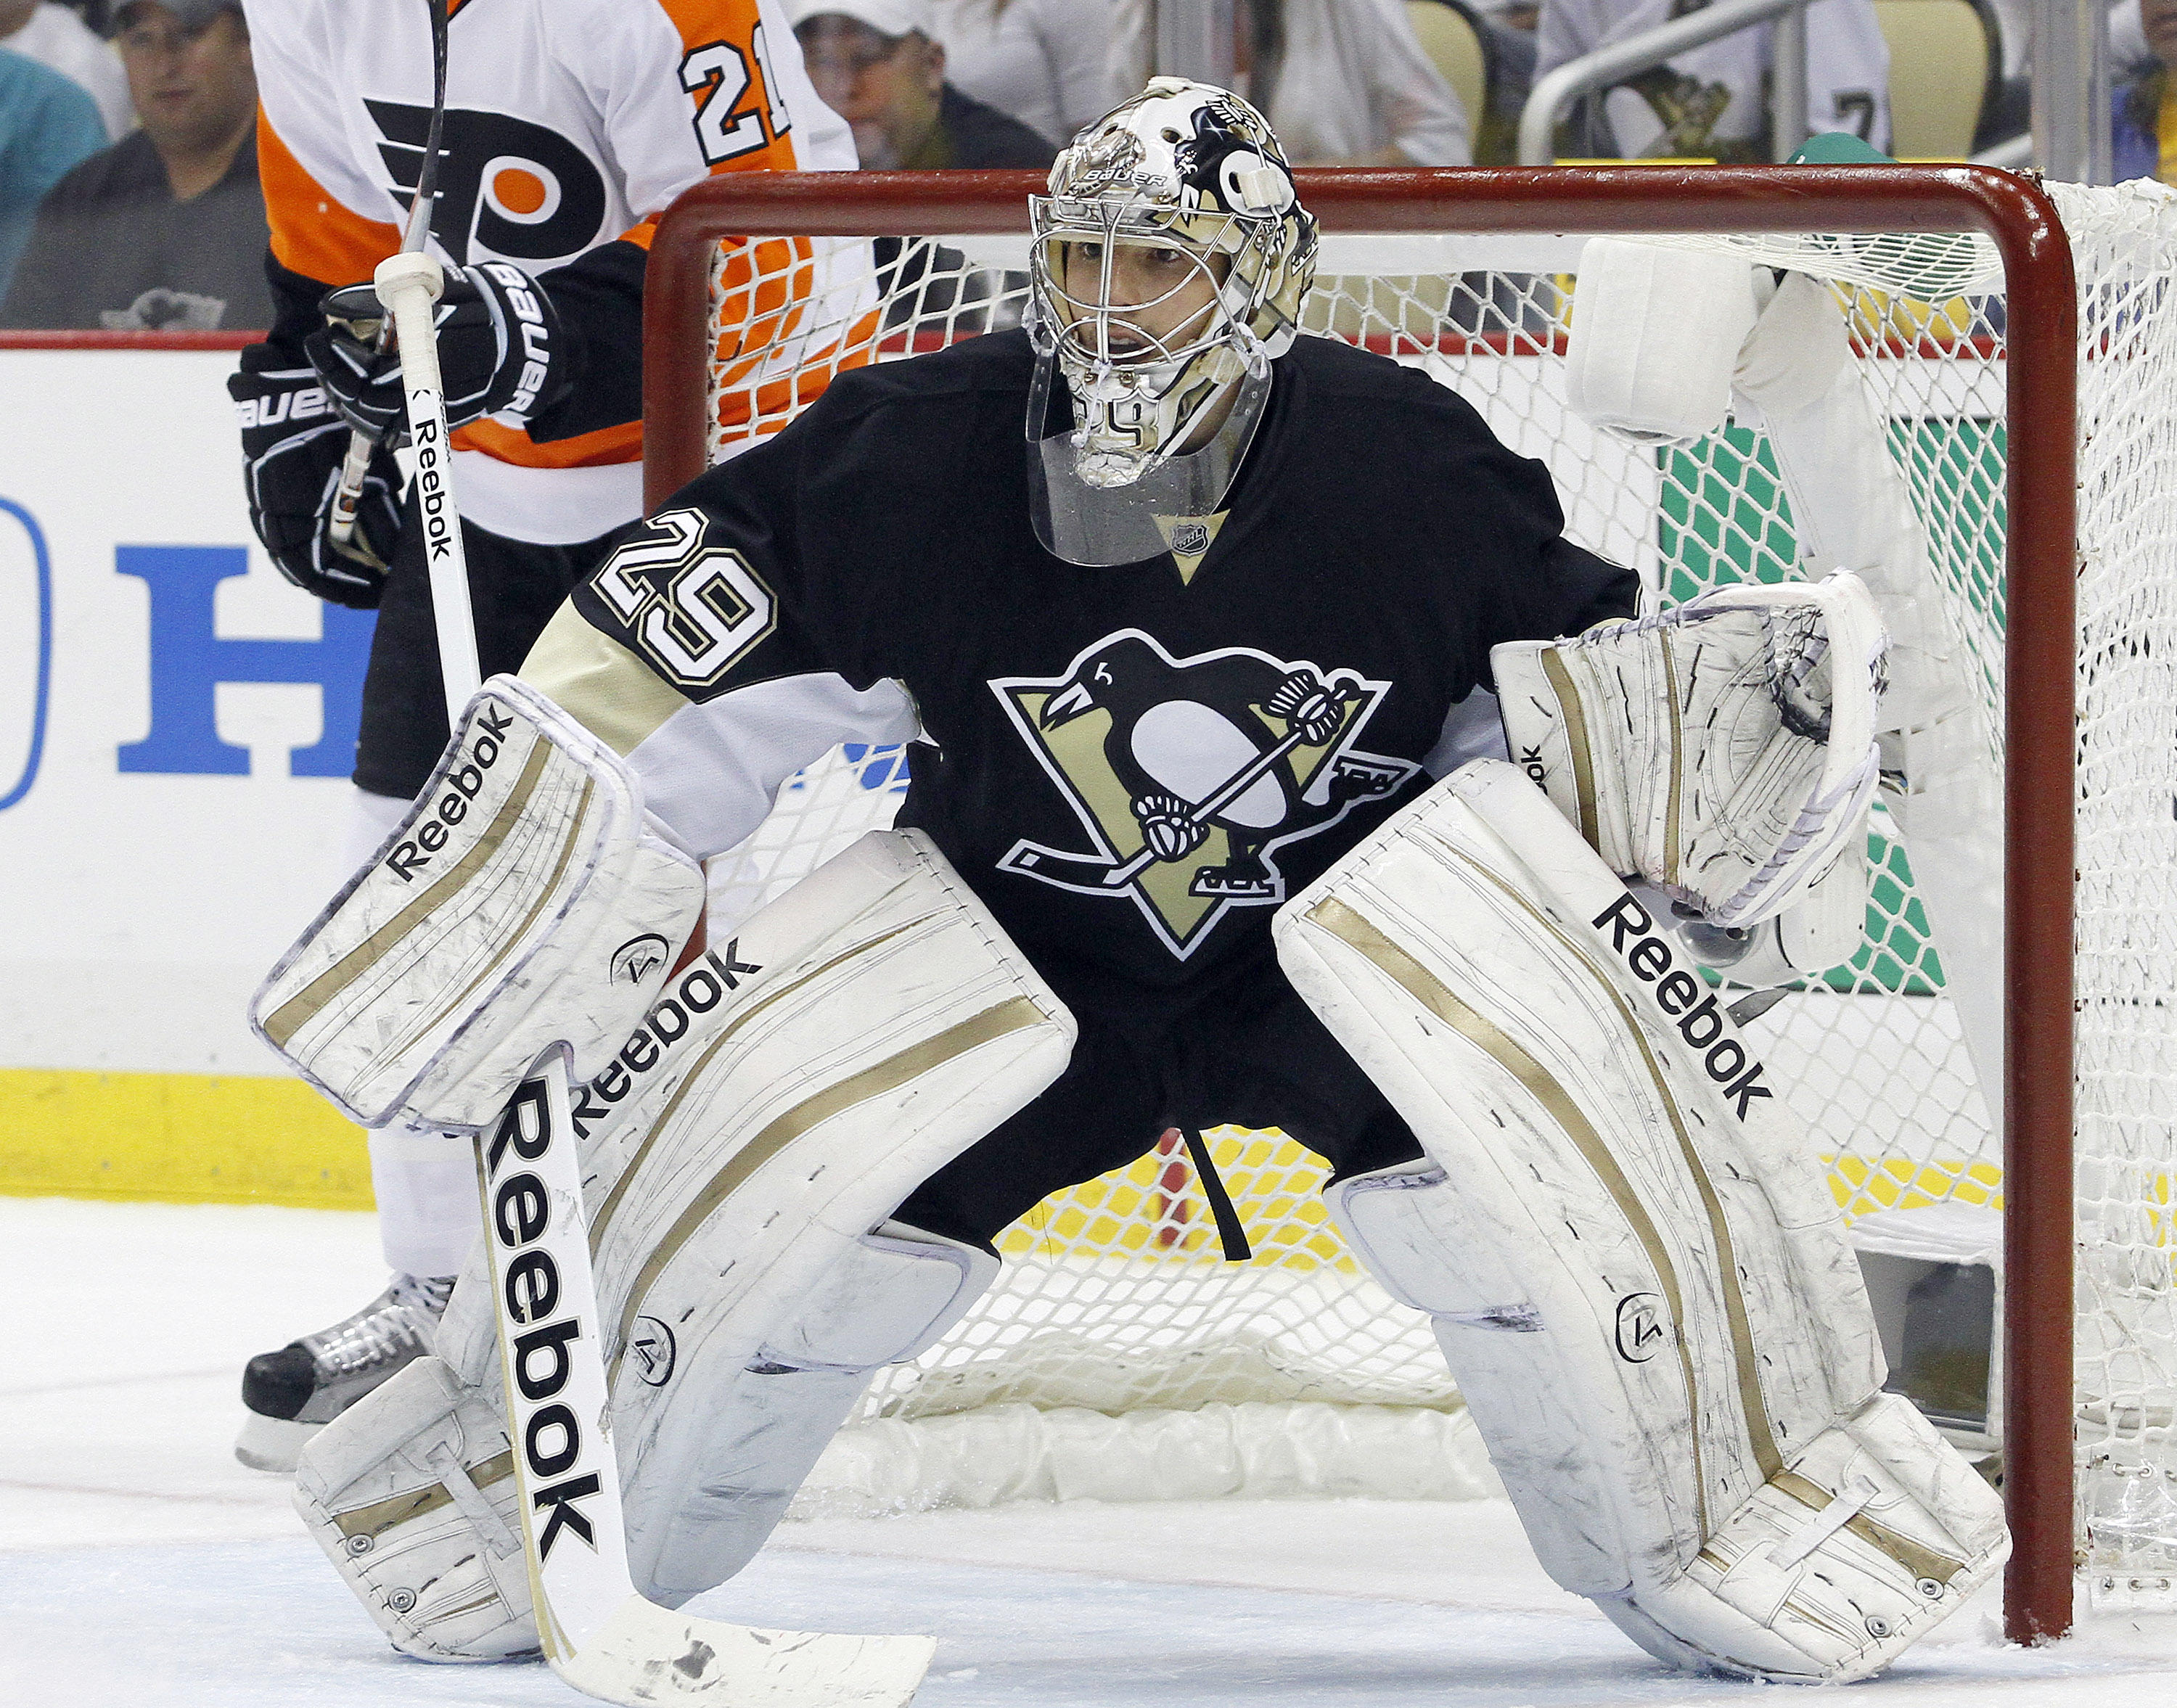 Marc-Andre Fleury made 14 saves in the third period of Game 5. (Getty Images)